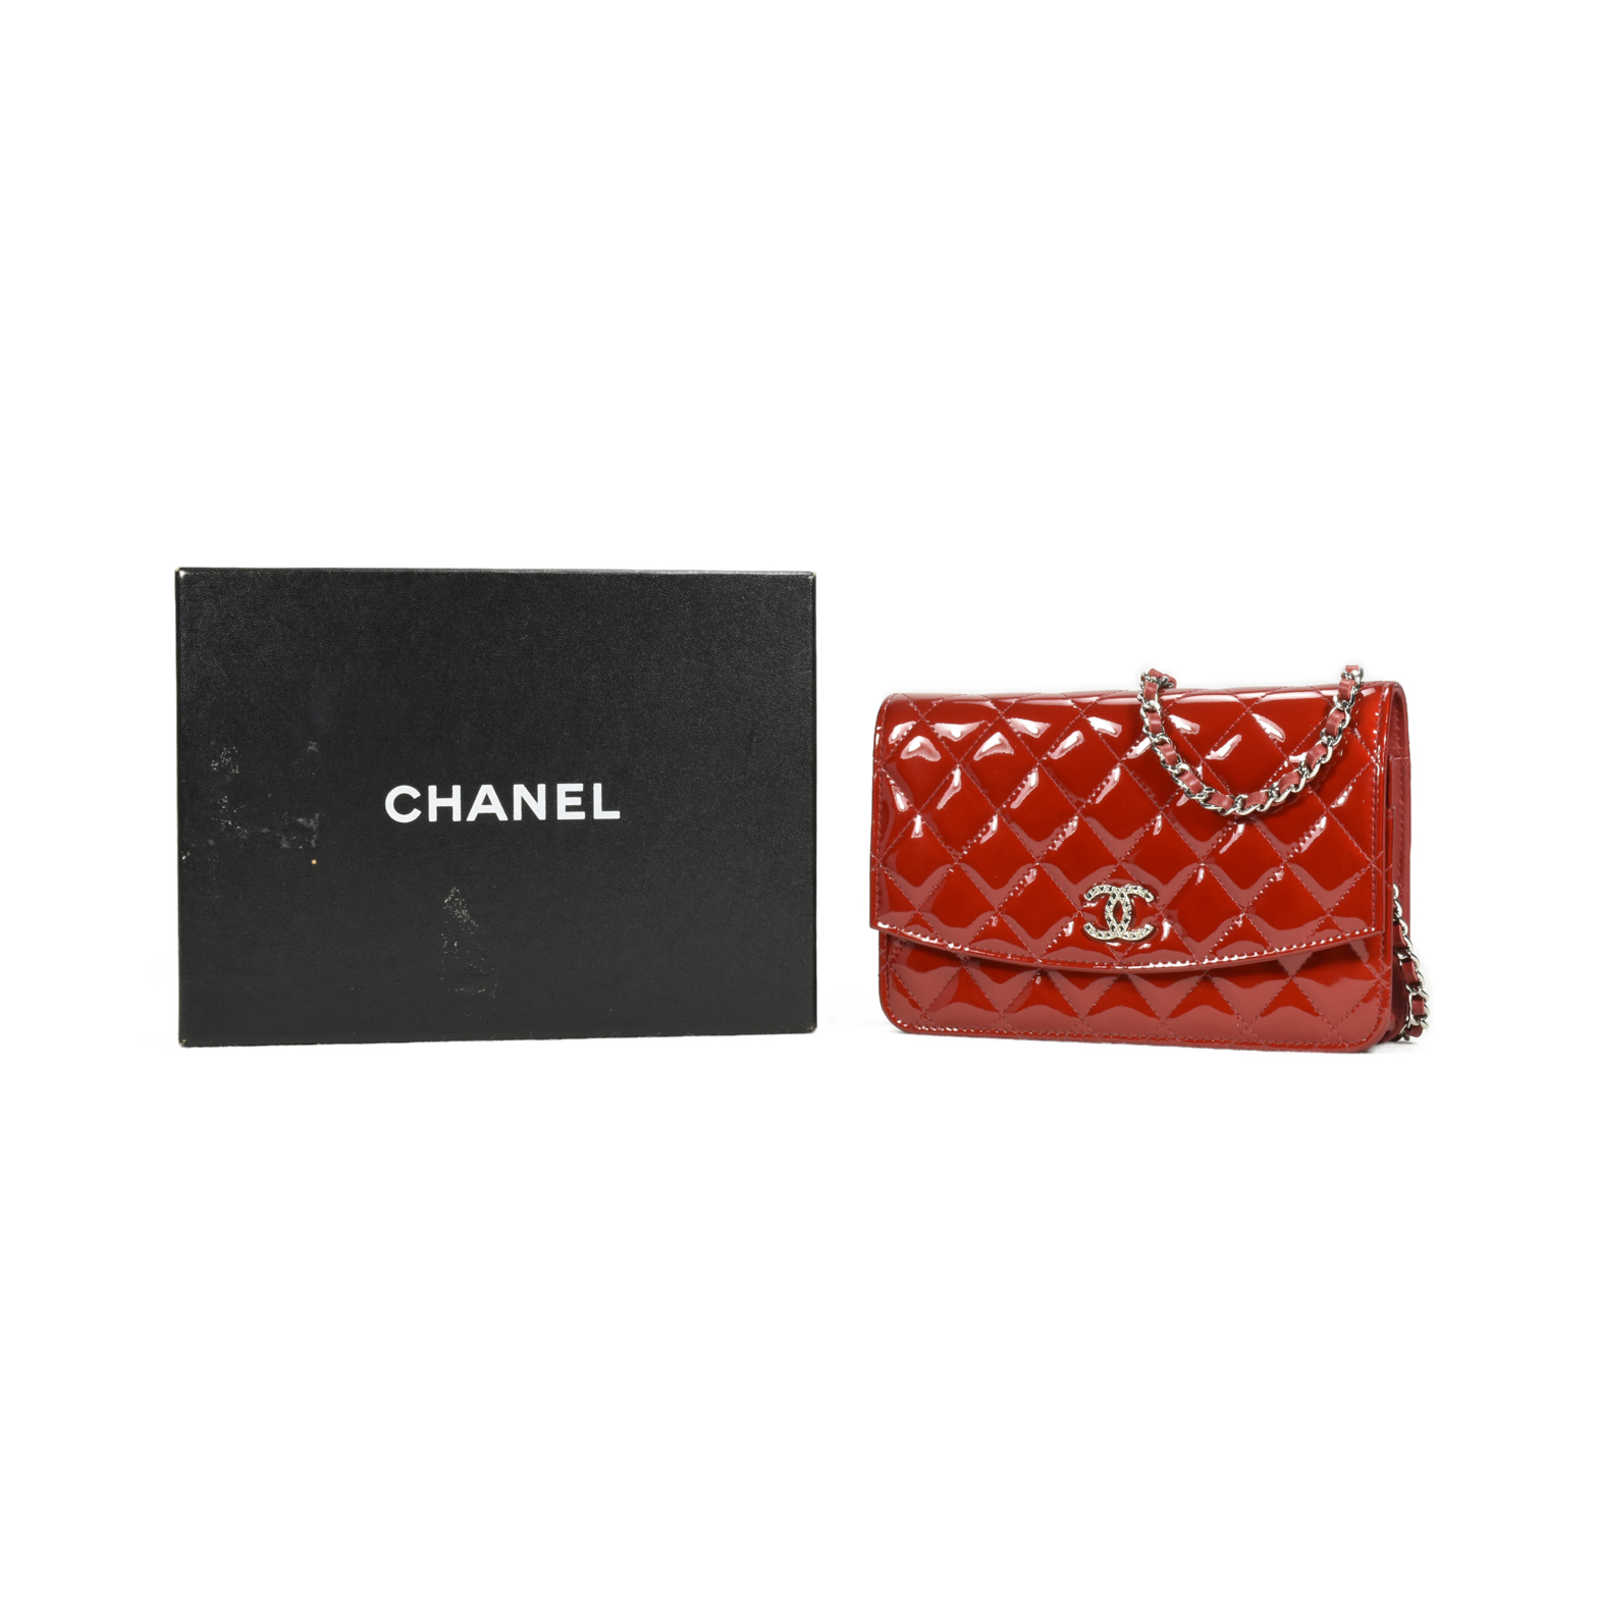 177de883782c ... Authentic Second Hand Chanel Patent Brilliant Wallet on Chain  (PSS-240-00171)